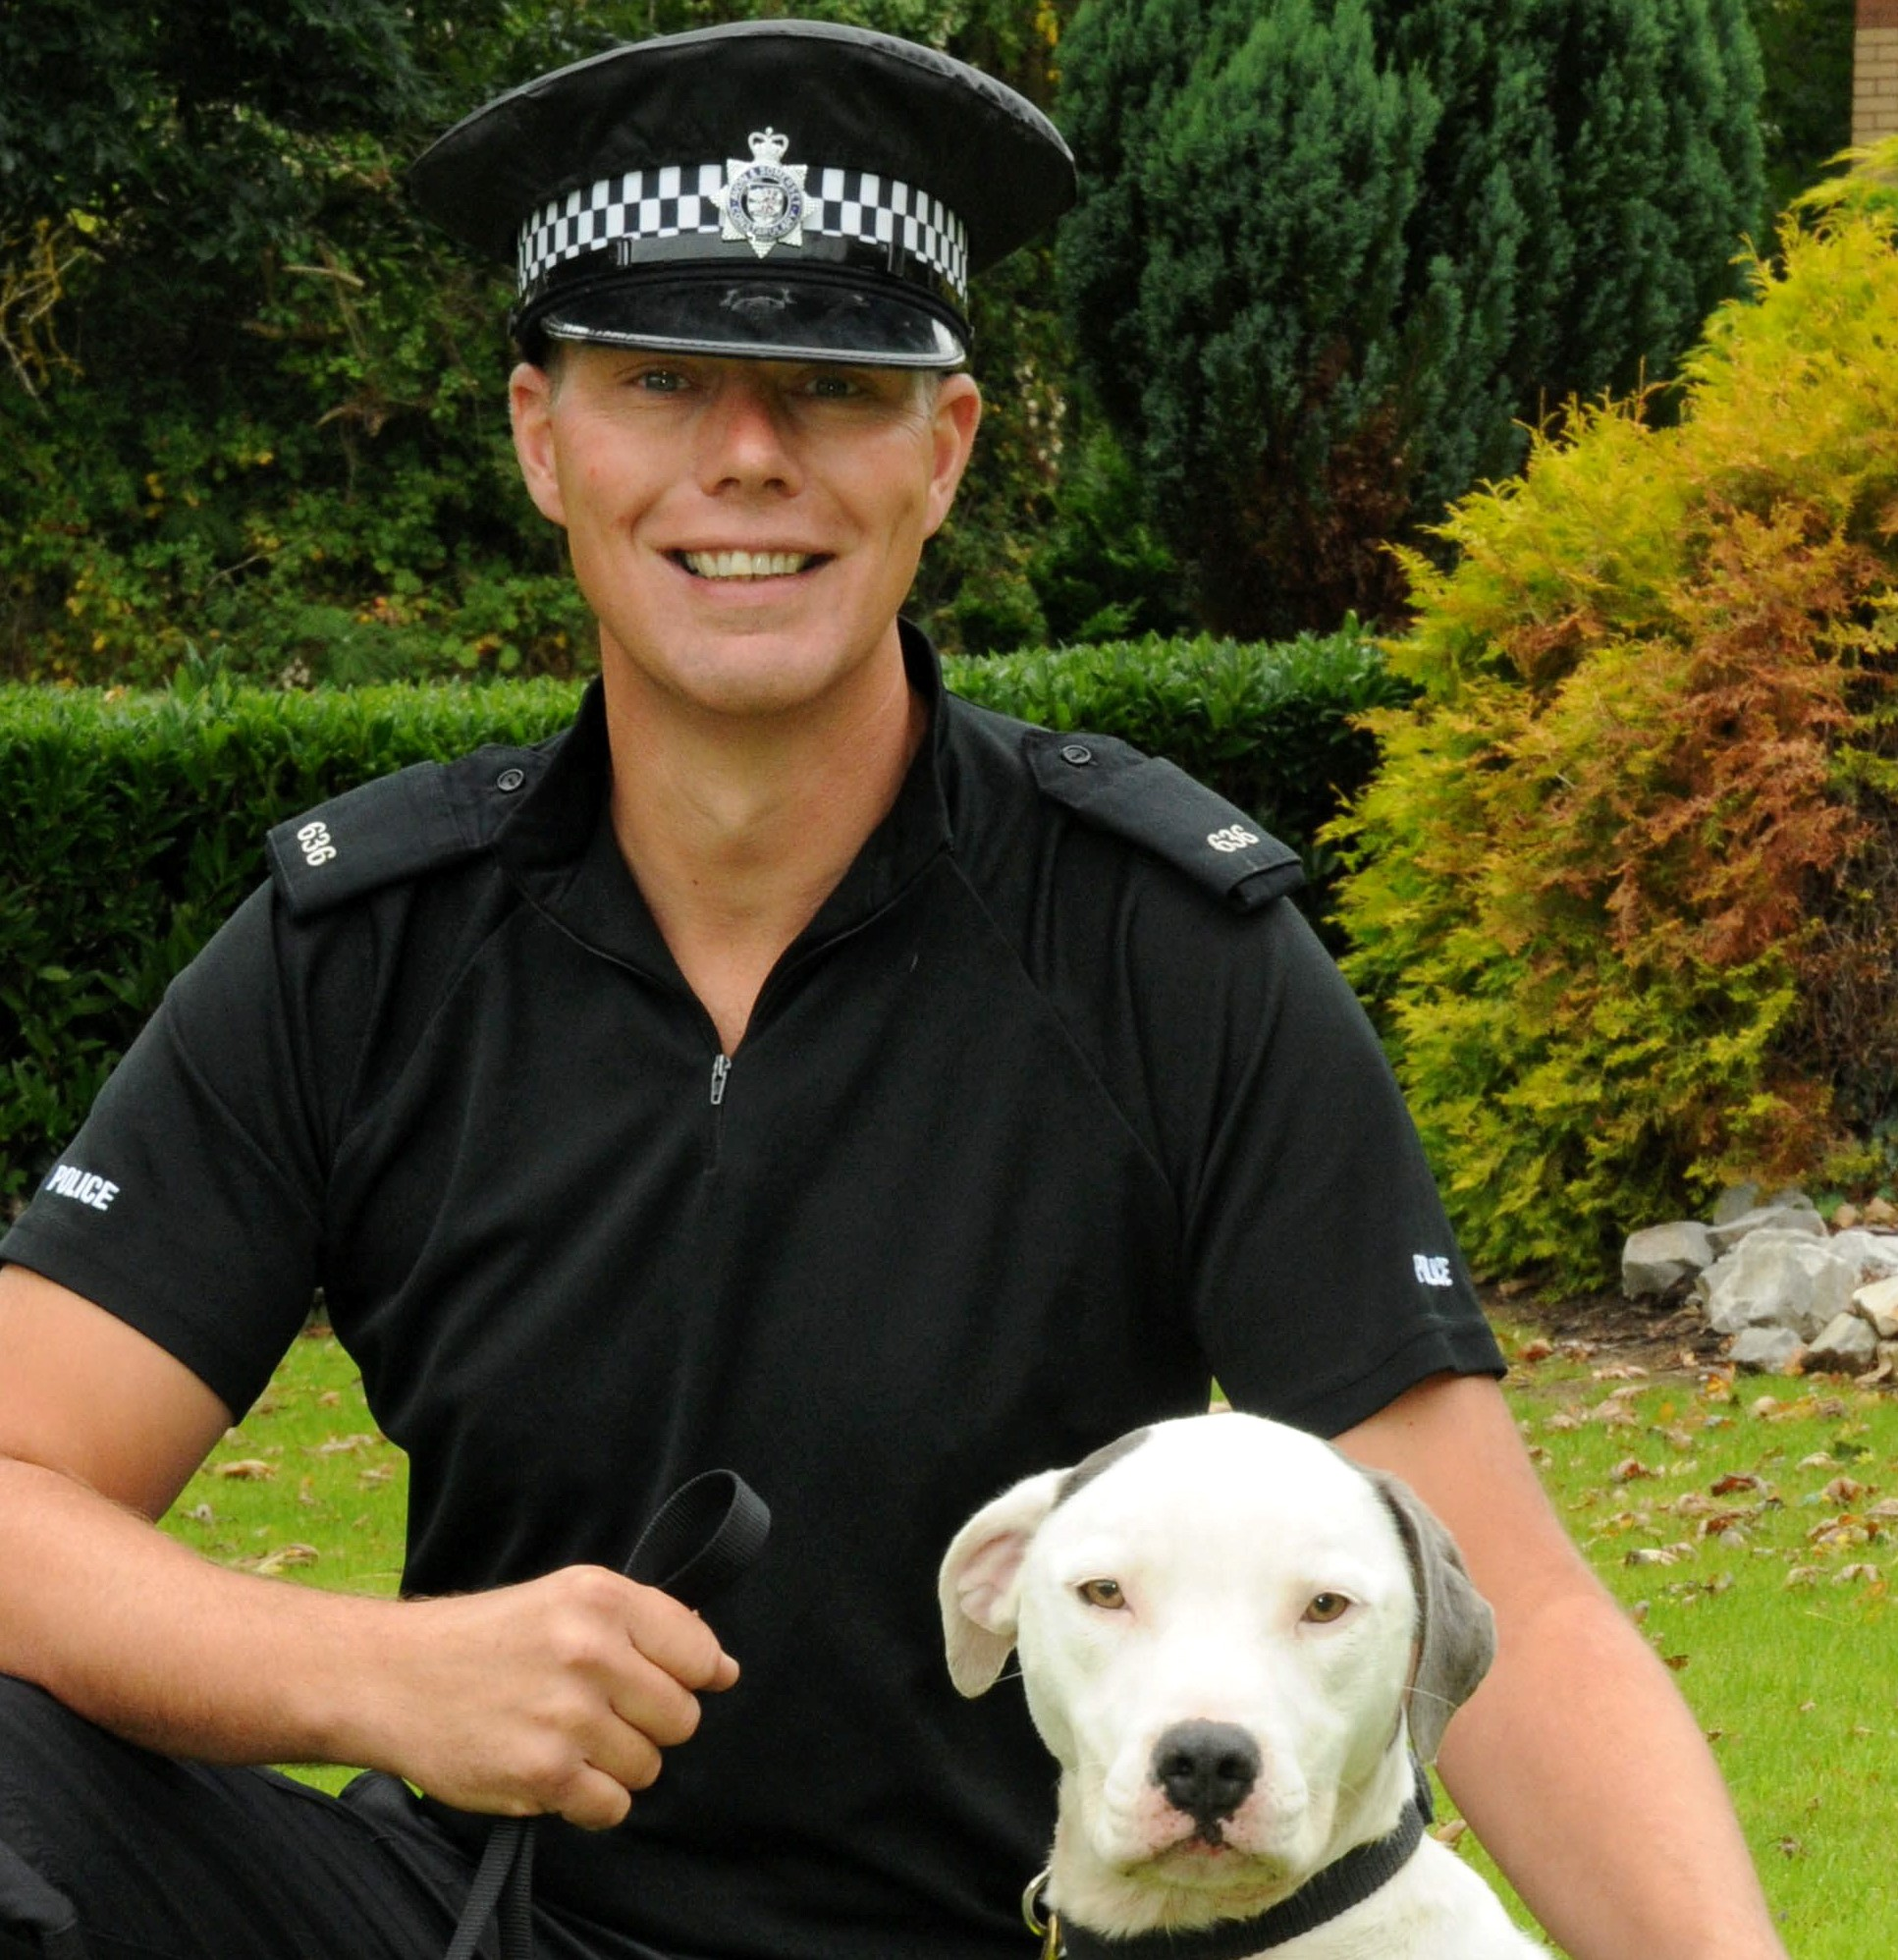 Dog handler PC Lee Webb with Kos the Staffie, the first Staffordshire Bull Terrier to work for a police force